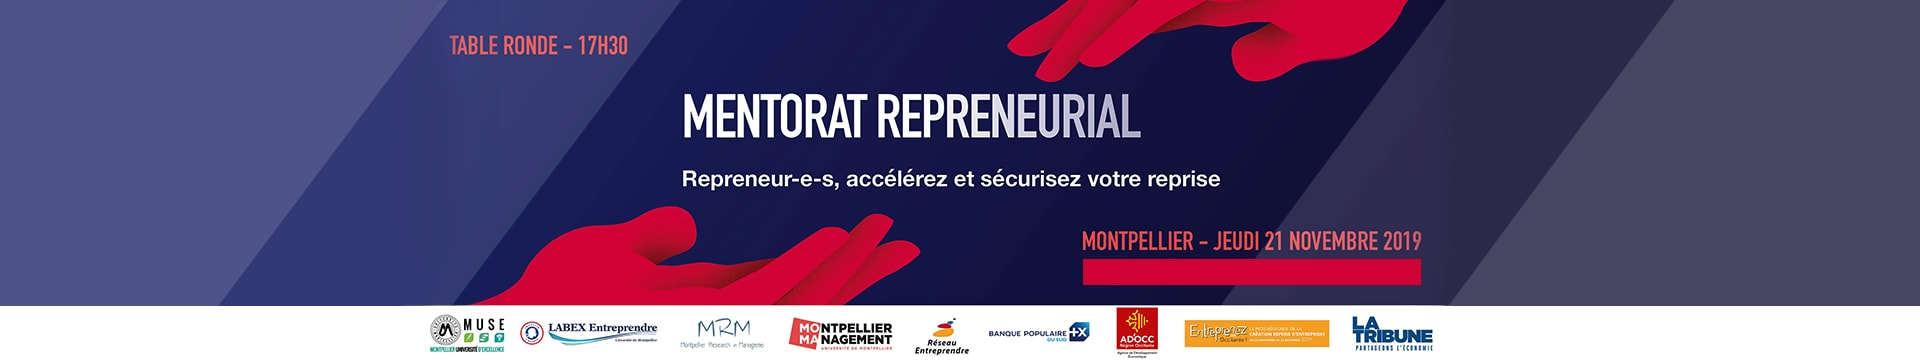 Table Ronde Mentorat Repreneurial - Montpellier Management